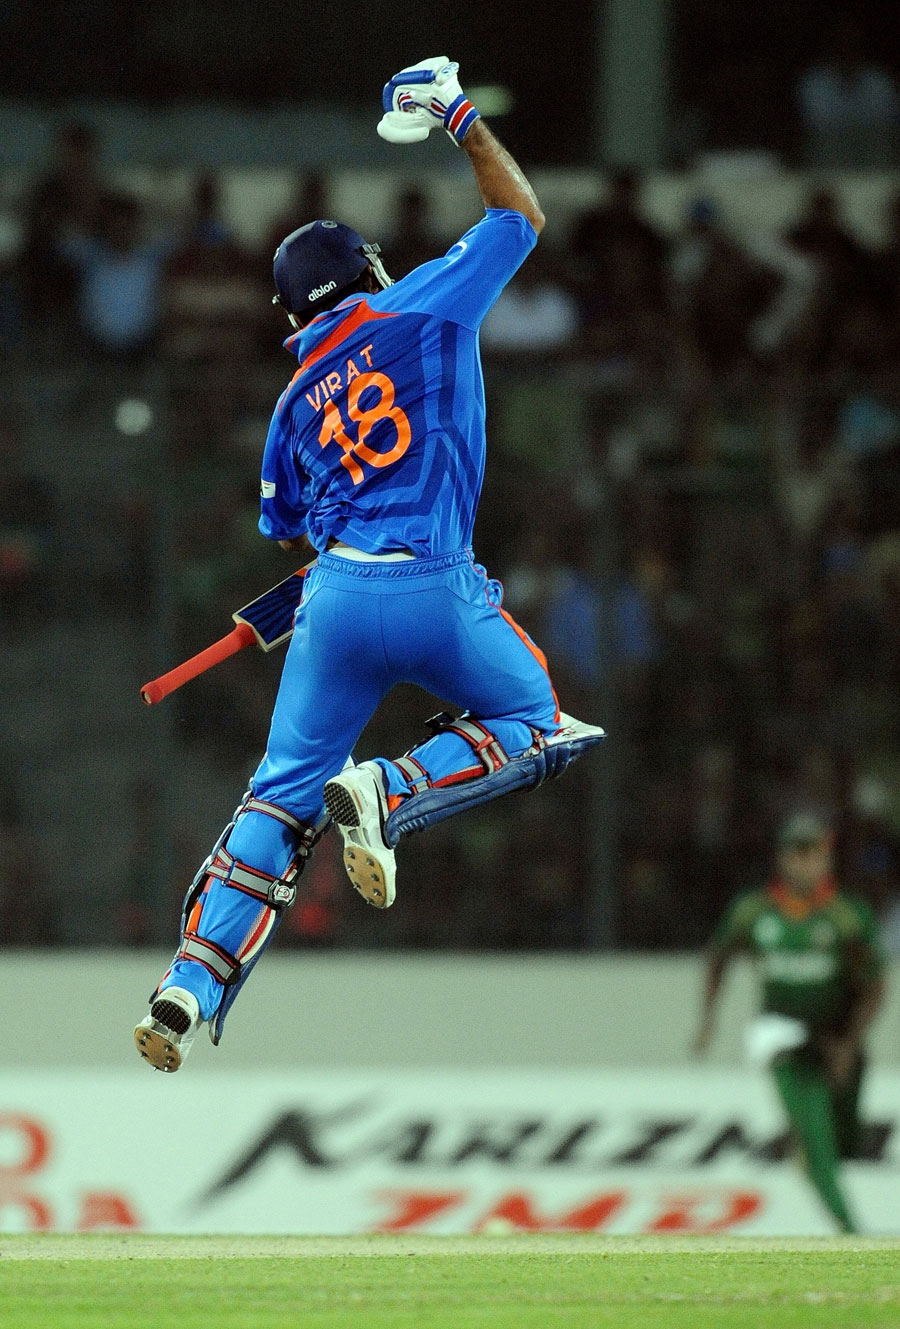 ... getting to a hundred off 83 balls   Cricket Photo   ESPN Cricinfo